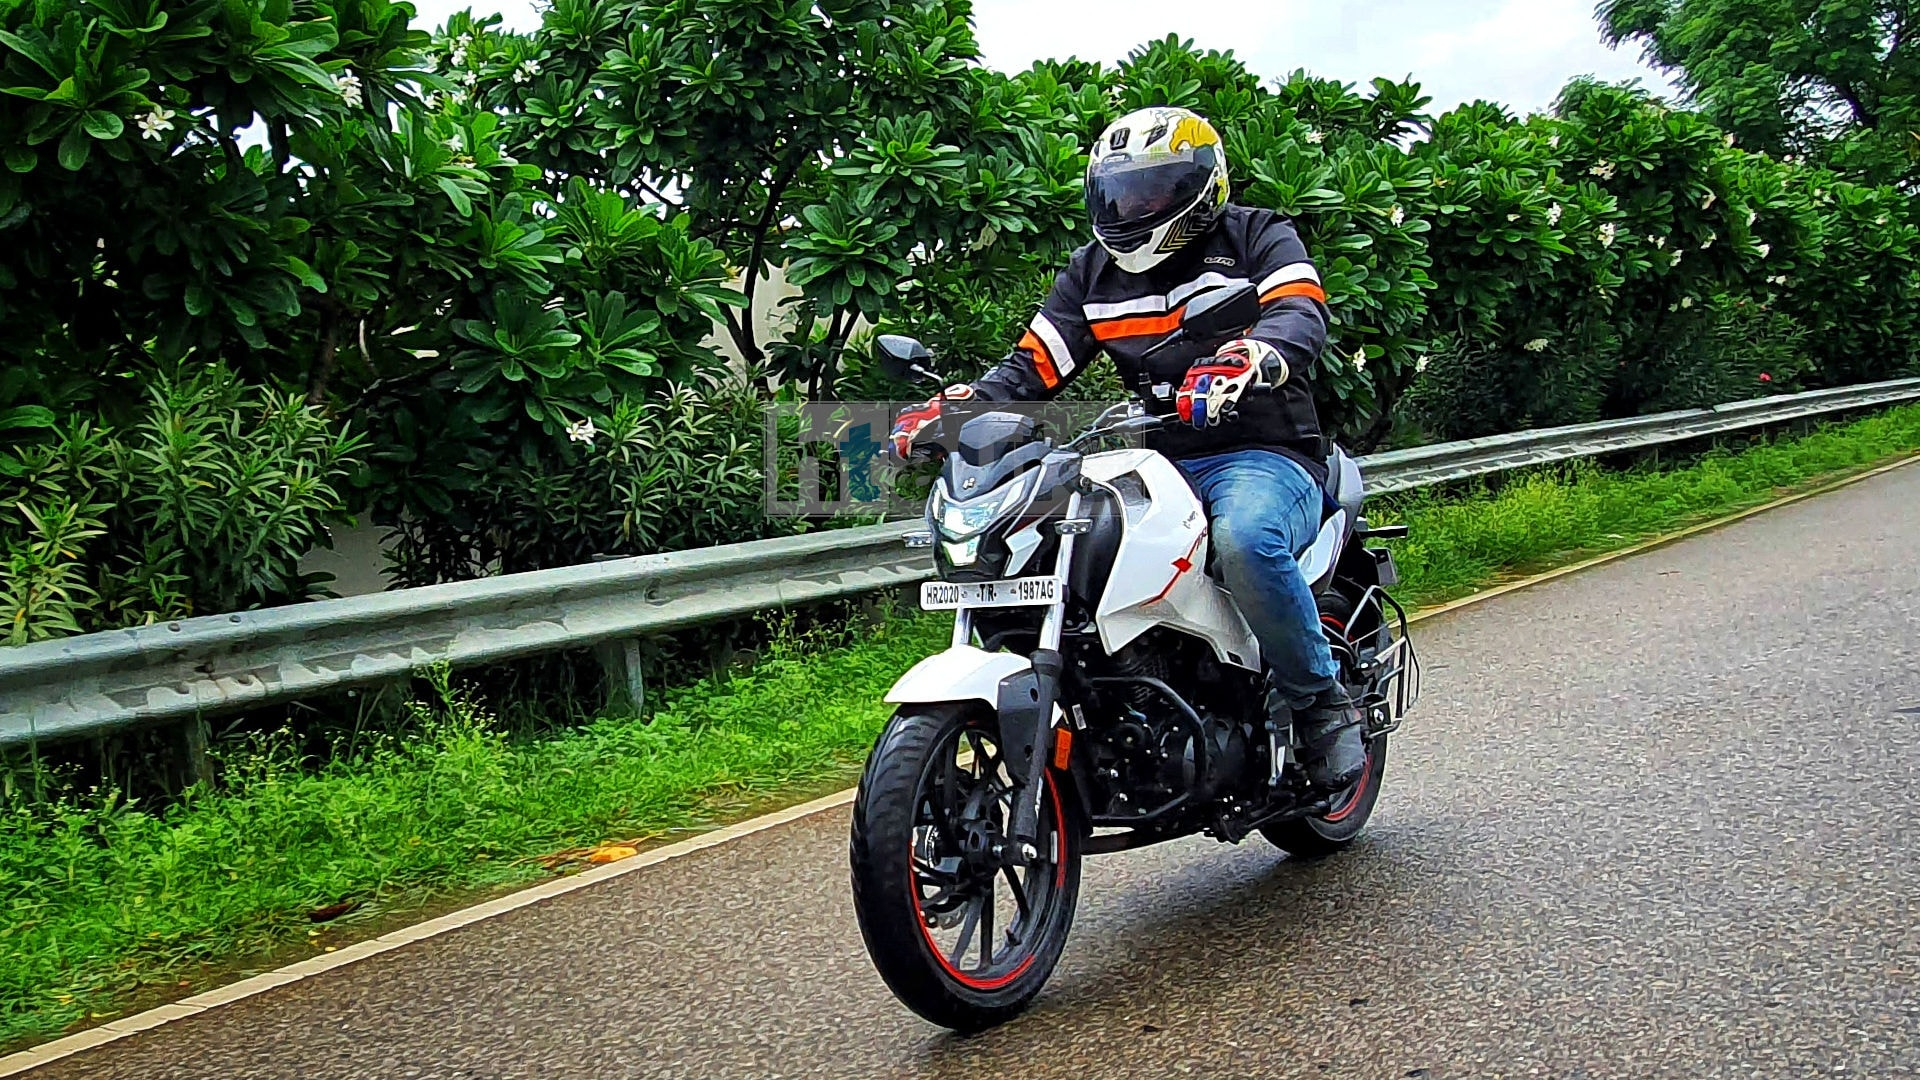 Hero Xtreme 160R is claimed to have a class-leading acceleration of 0 to 60 km/h in 4.7 seconds. Picture Courtesy: Sabyasachi Dasgupta